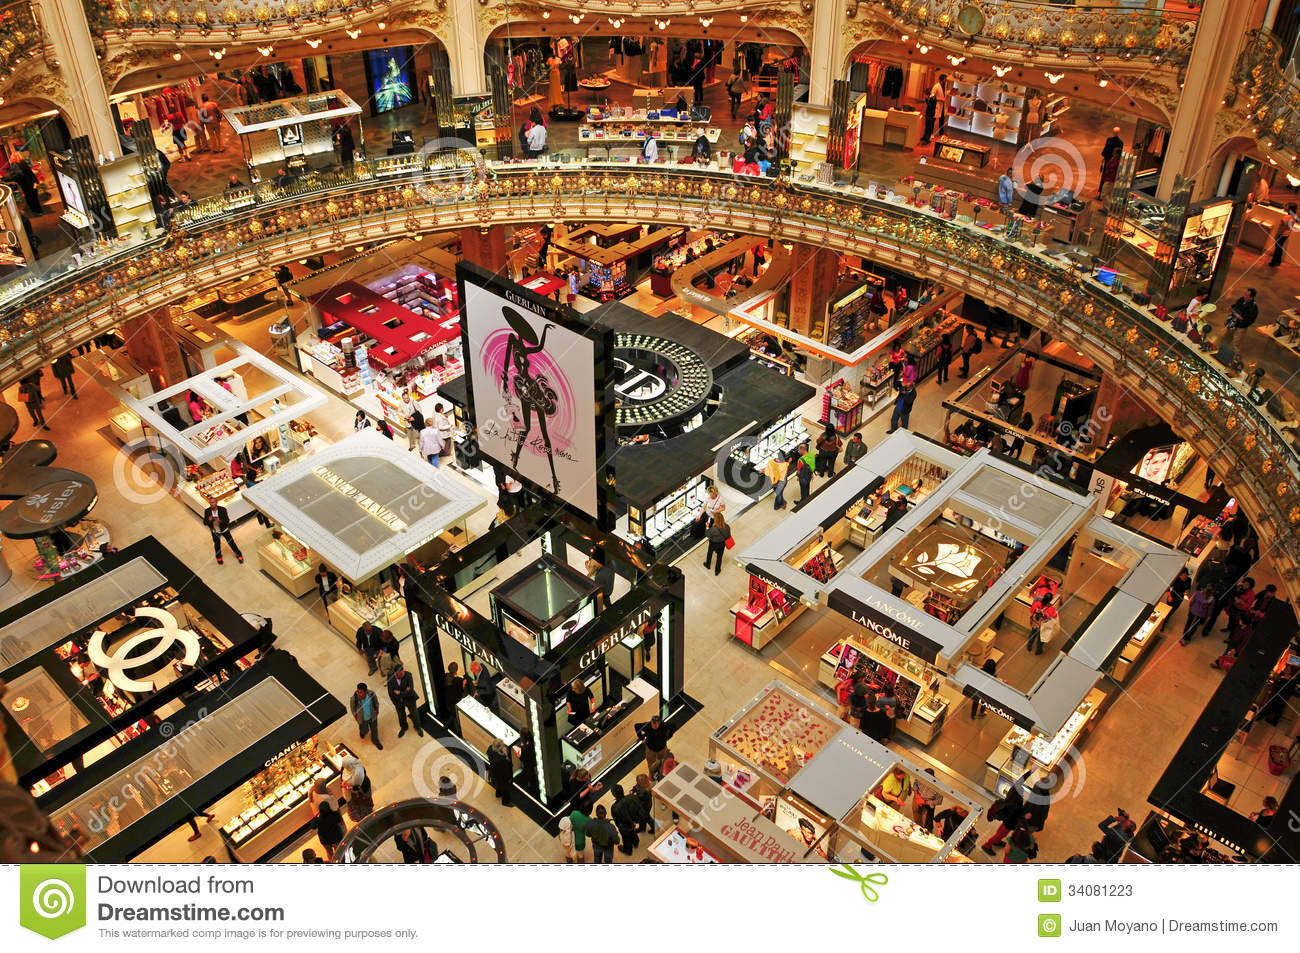 galeries lafayette in paris france editorial stock photo. Black Bedroom Furniture Sets. Home Design Ideas